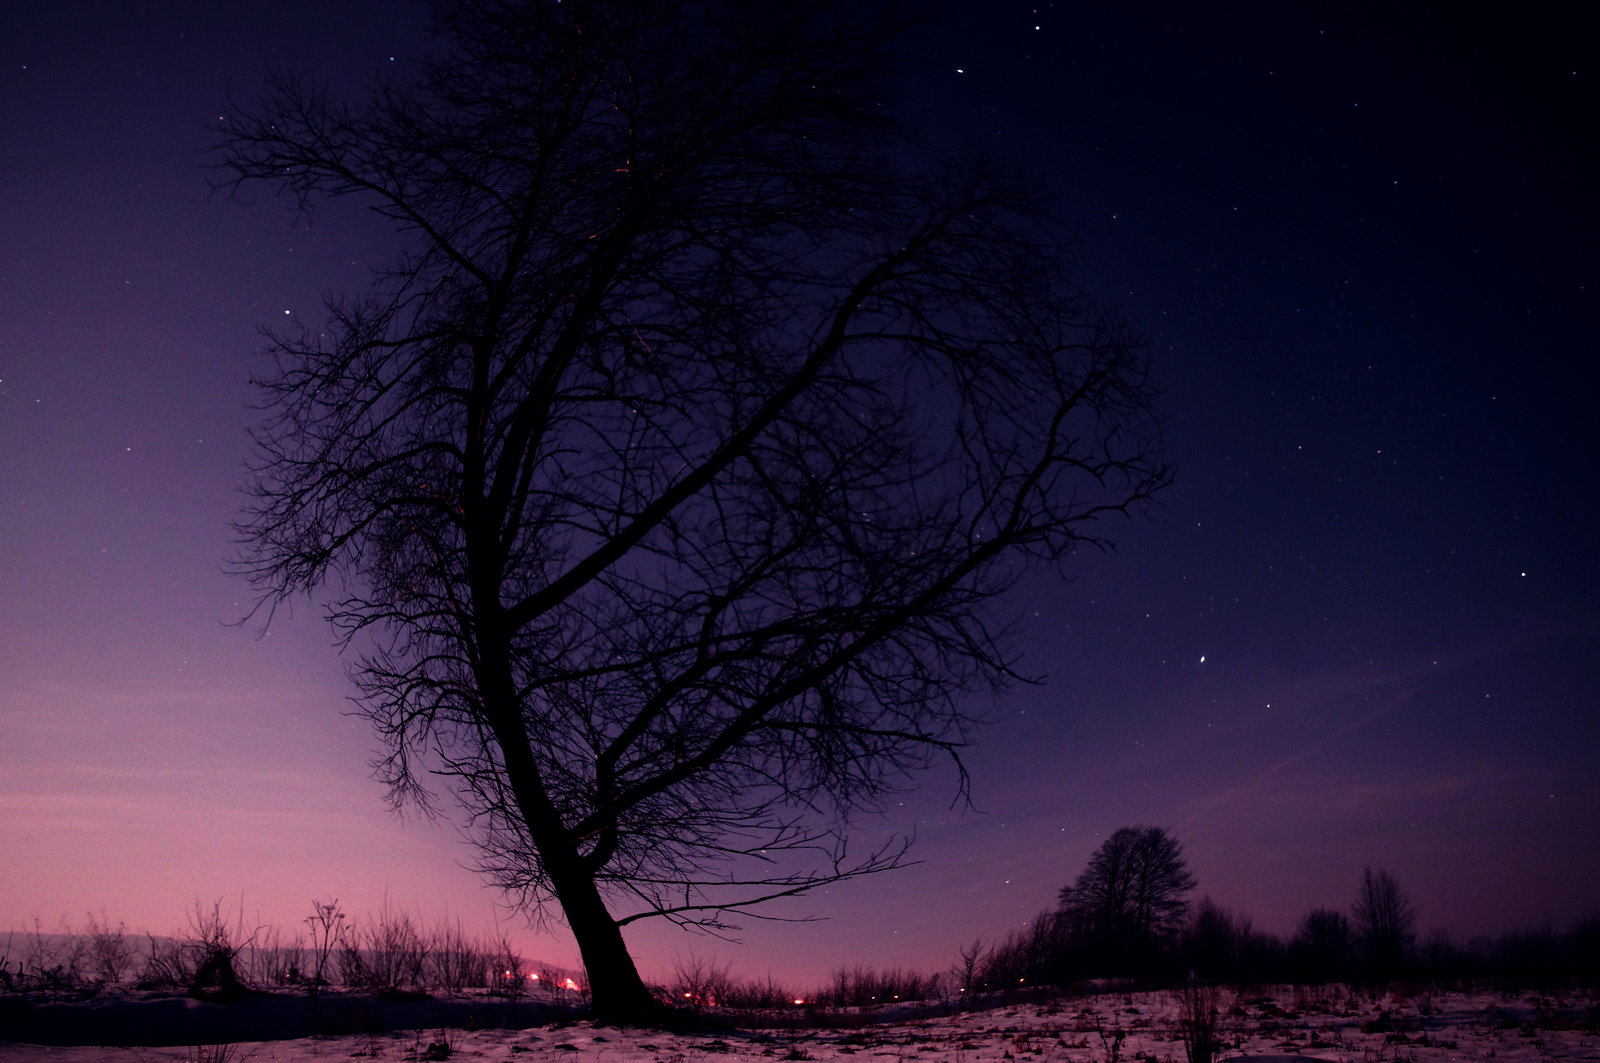 Winter Night Sky by mcgraczu 1600x1063